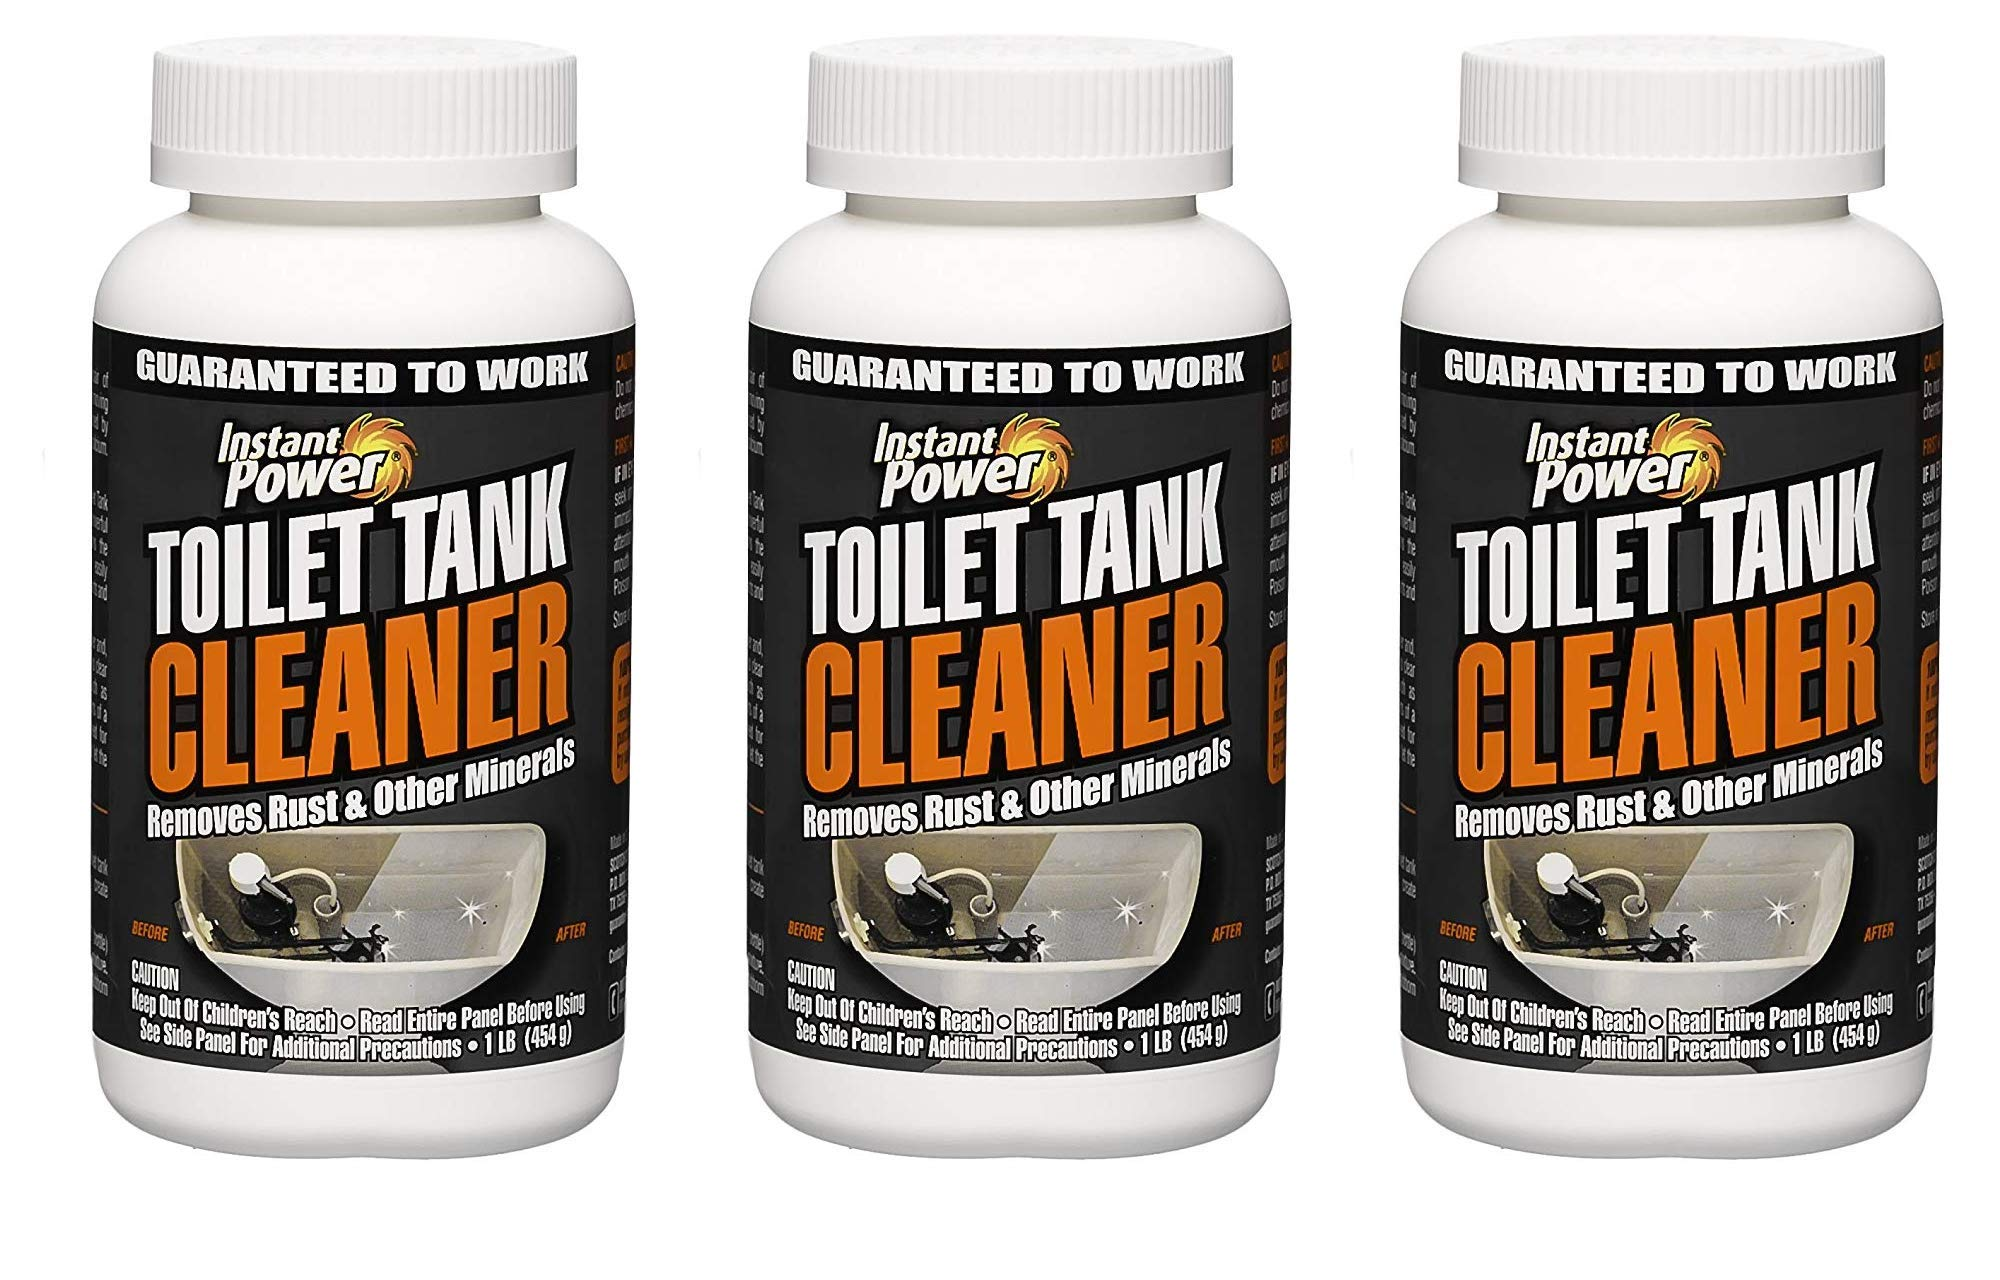 Instant Power 1806 Toilet Tank Cleaner, 16 oz (1, Тhrее Pаck) by Instant Power